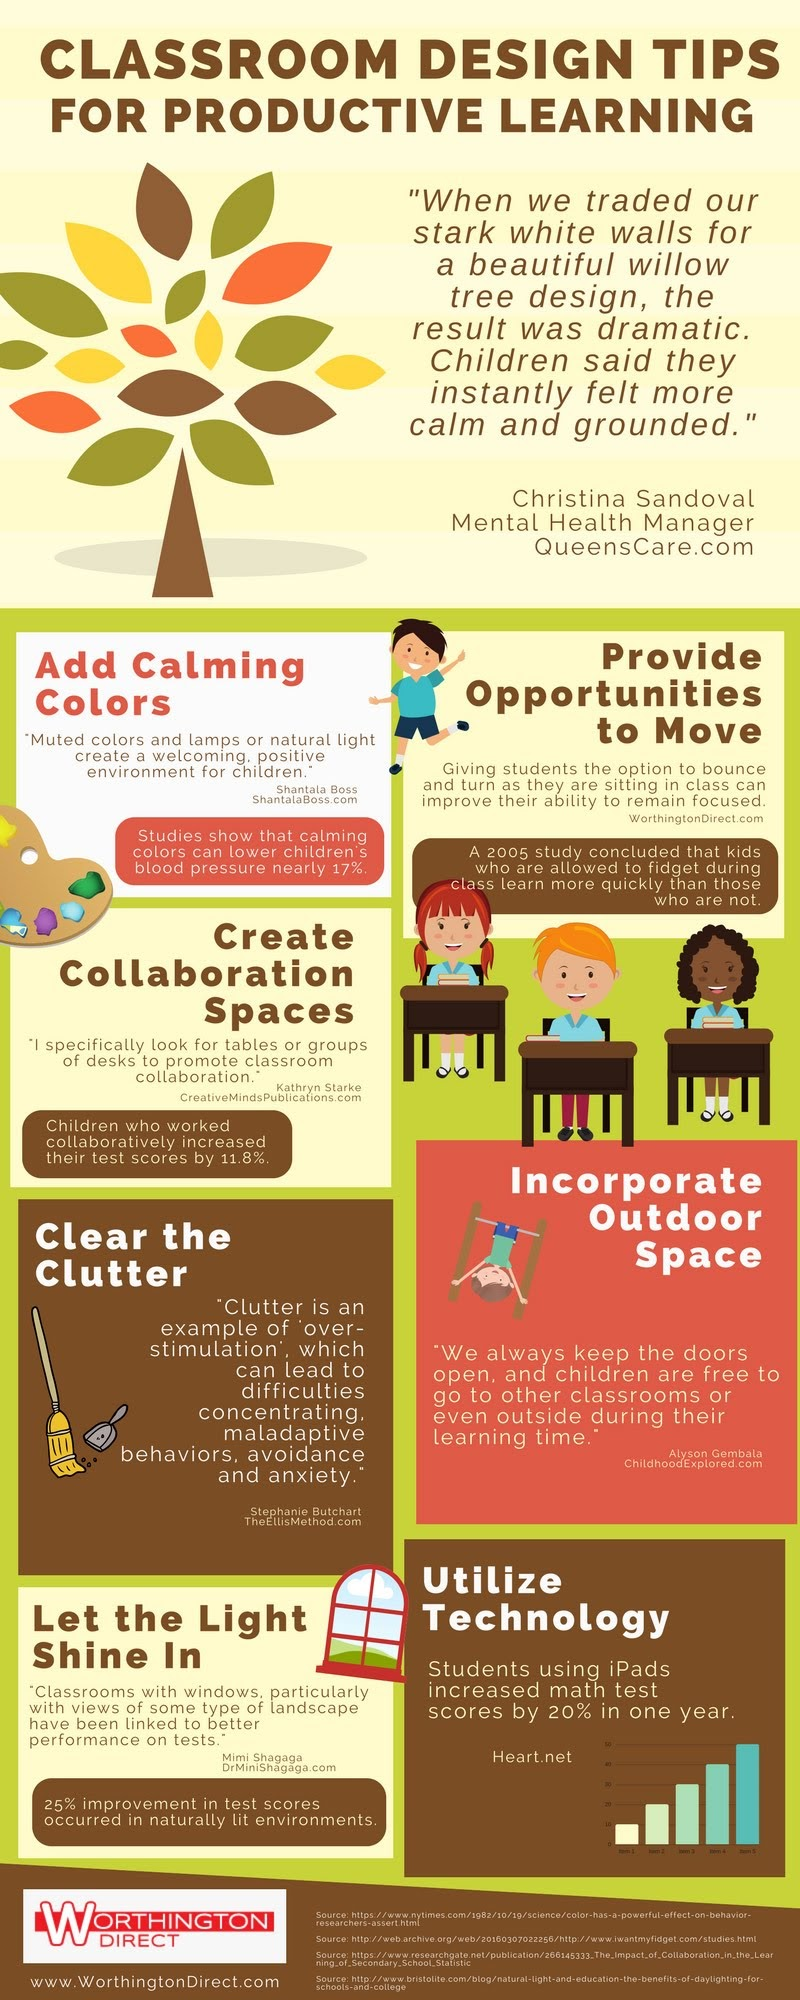 Classroom Design Tips for Productive Learning #Infographic